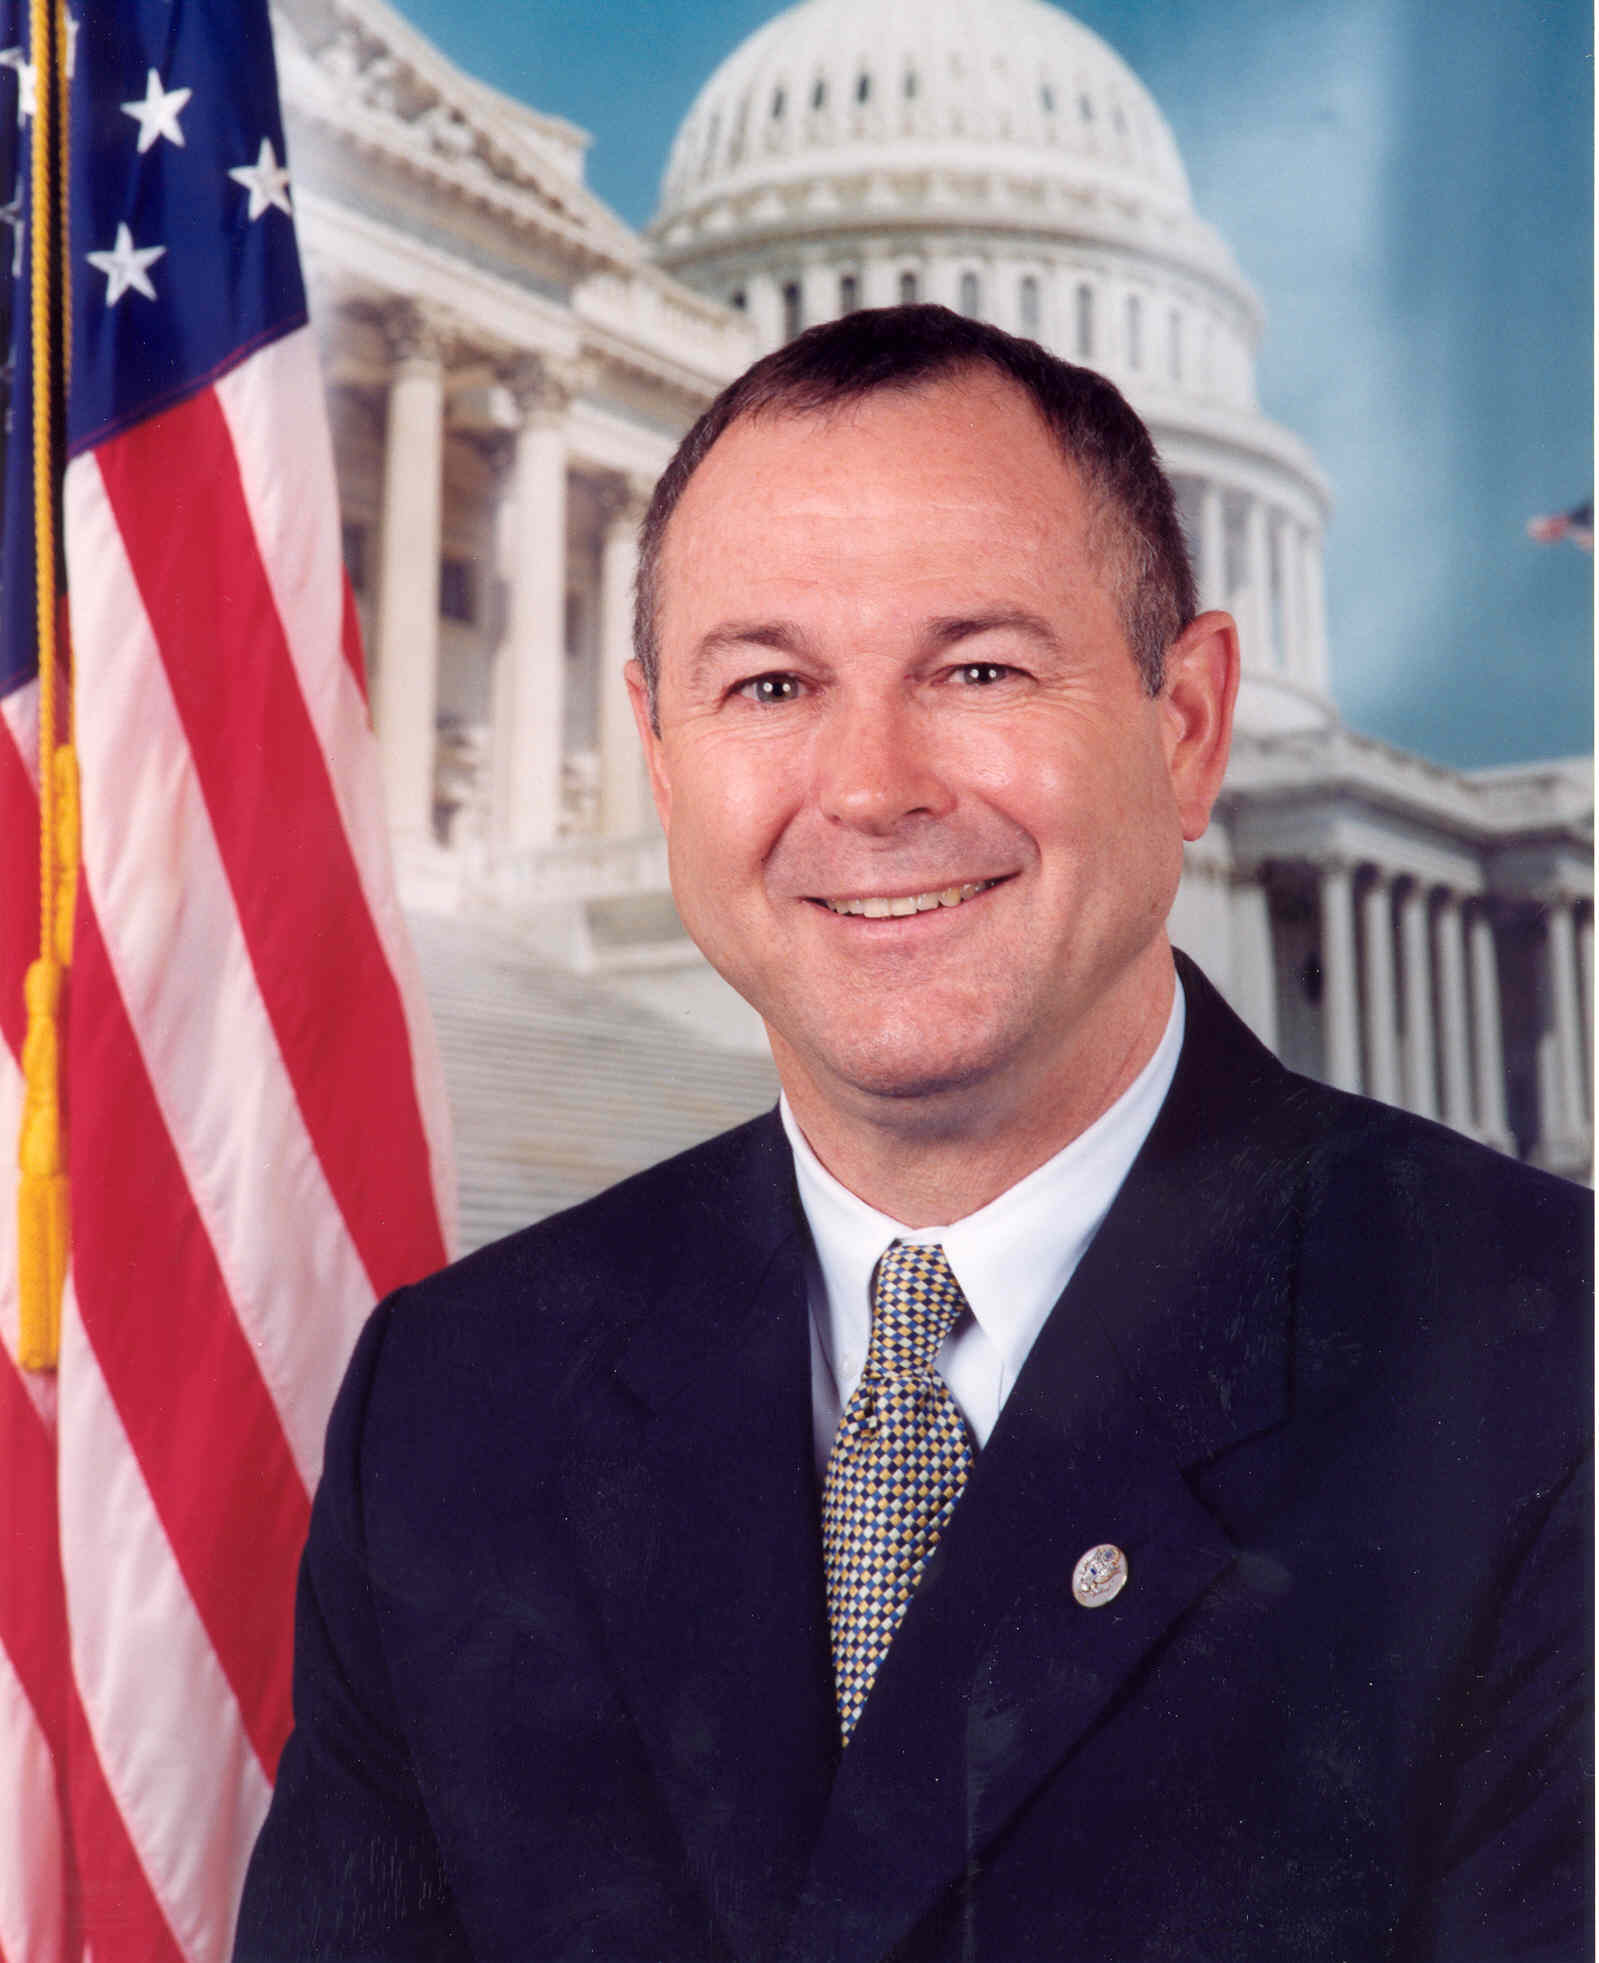 Dana Rohrabacher's quote #3